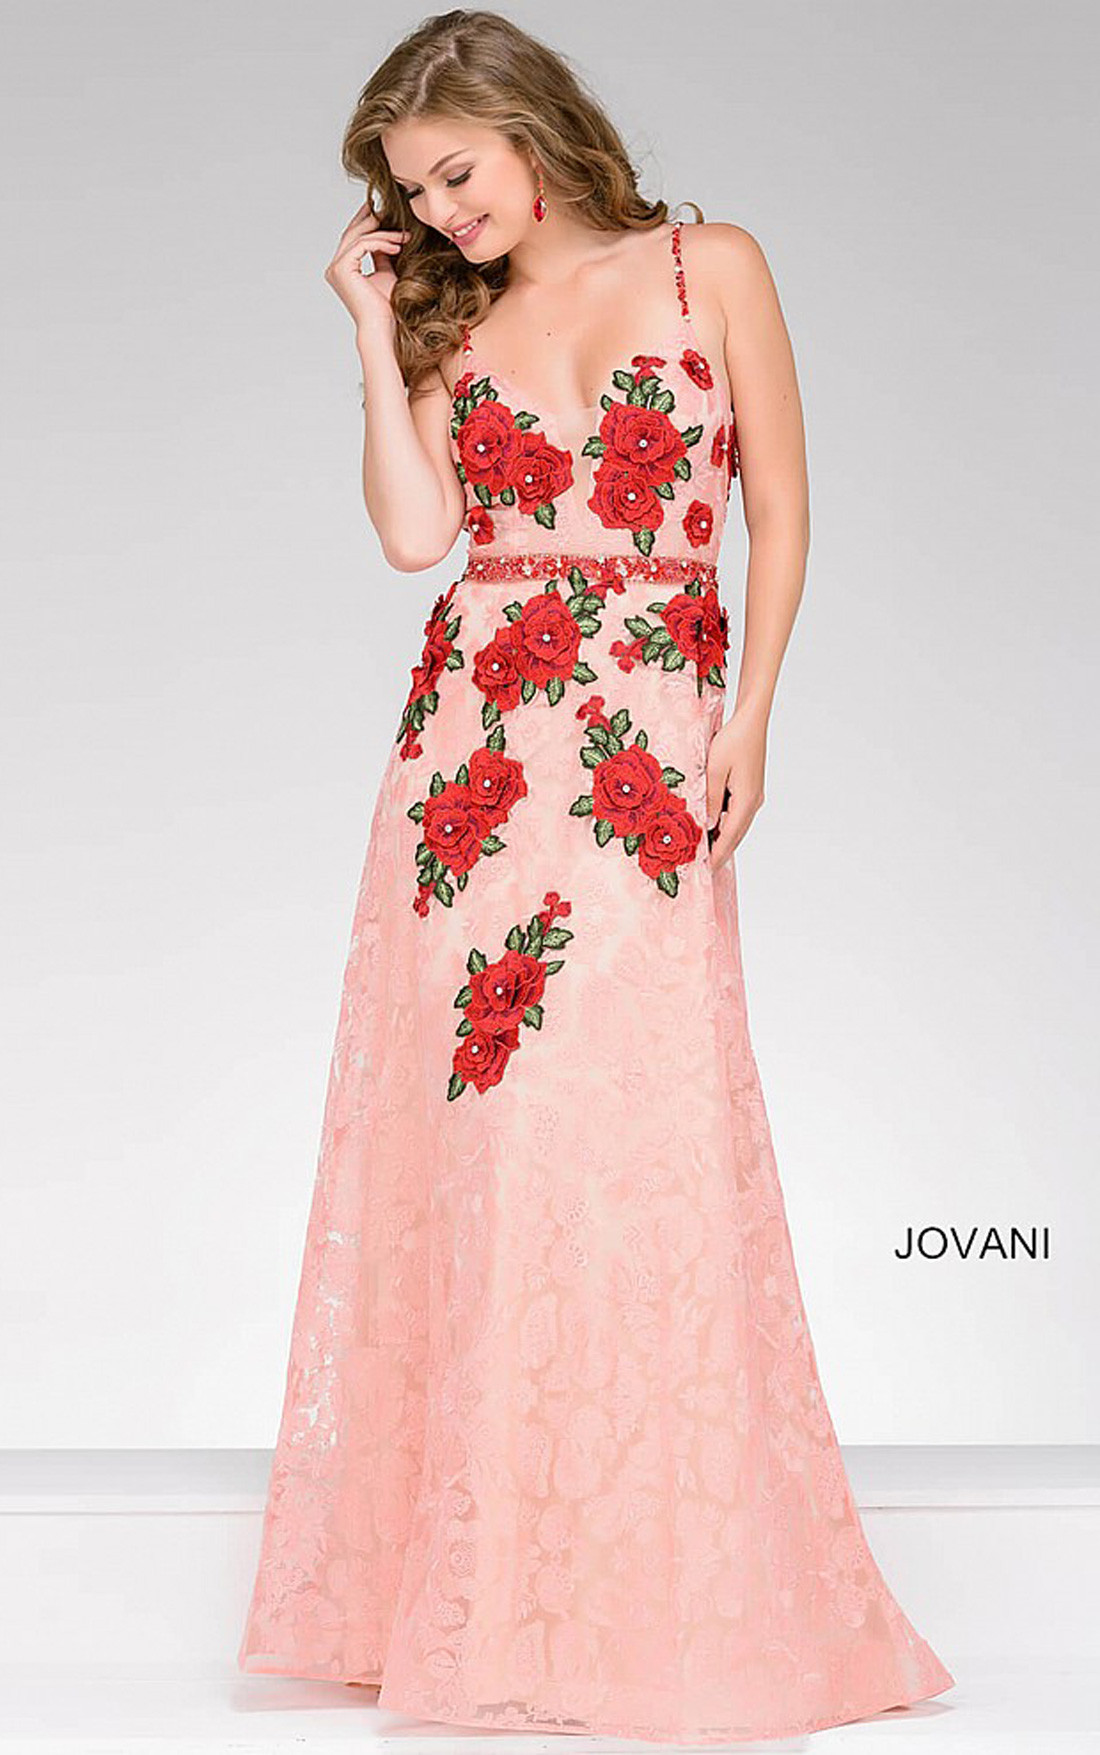 Jovani Dresses | Womens Peach Sleeveless Lace Dress with Red Floral ...